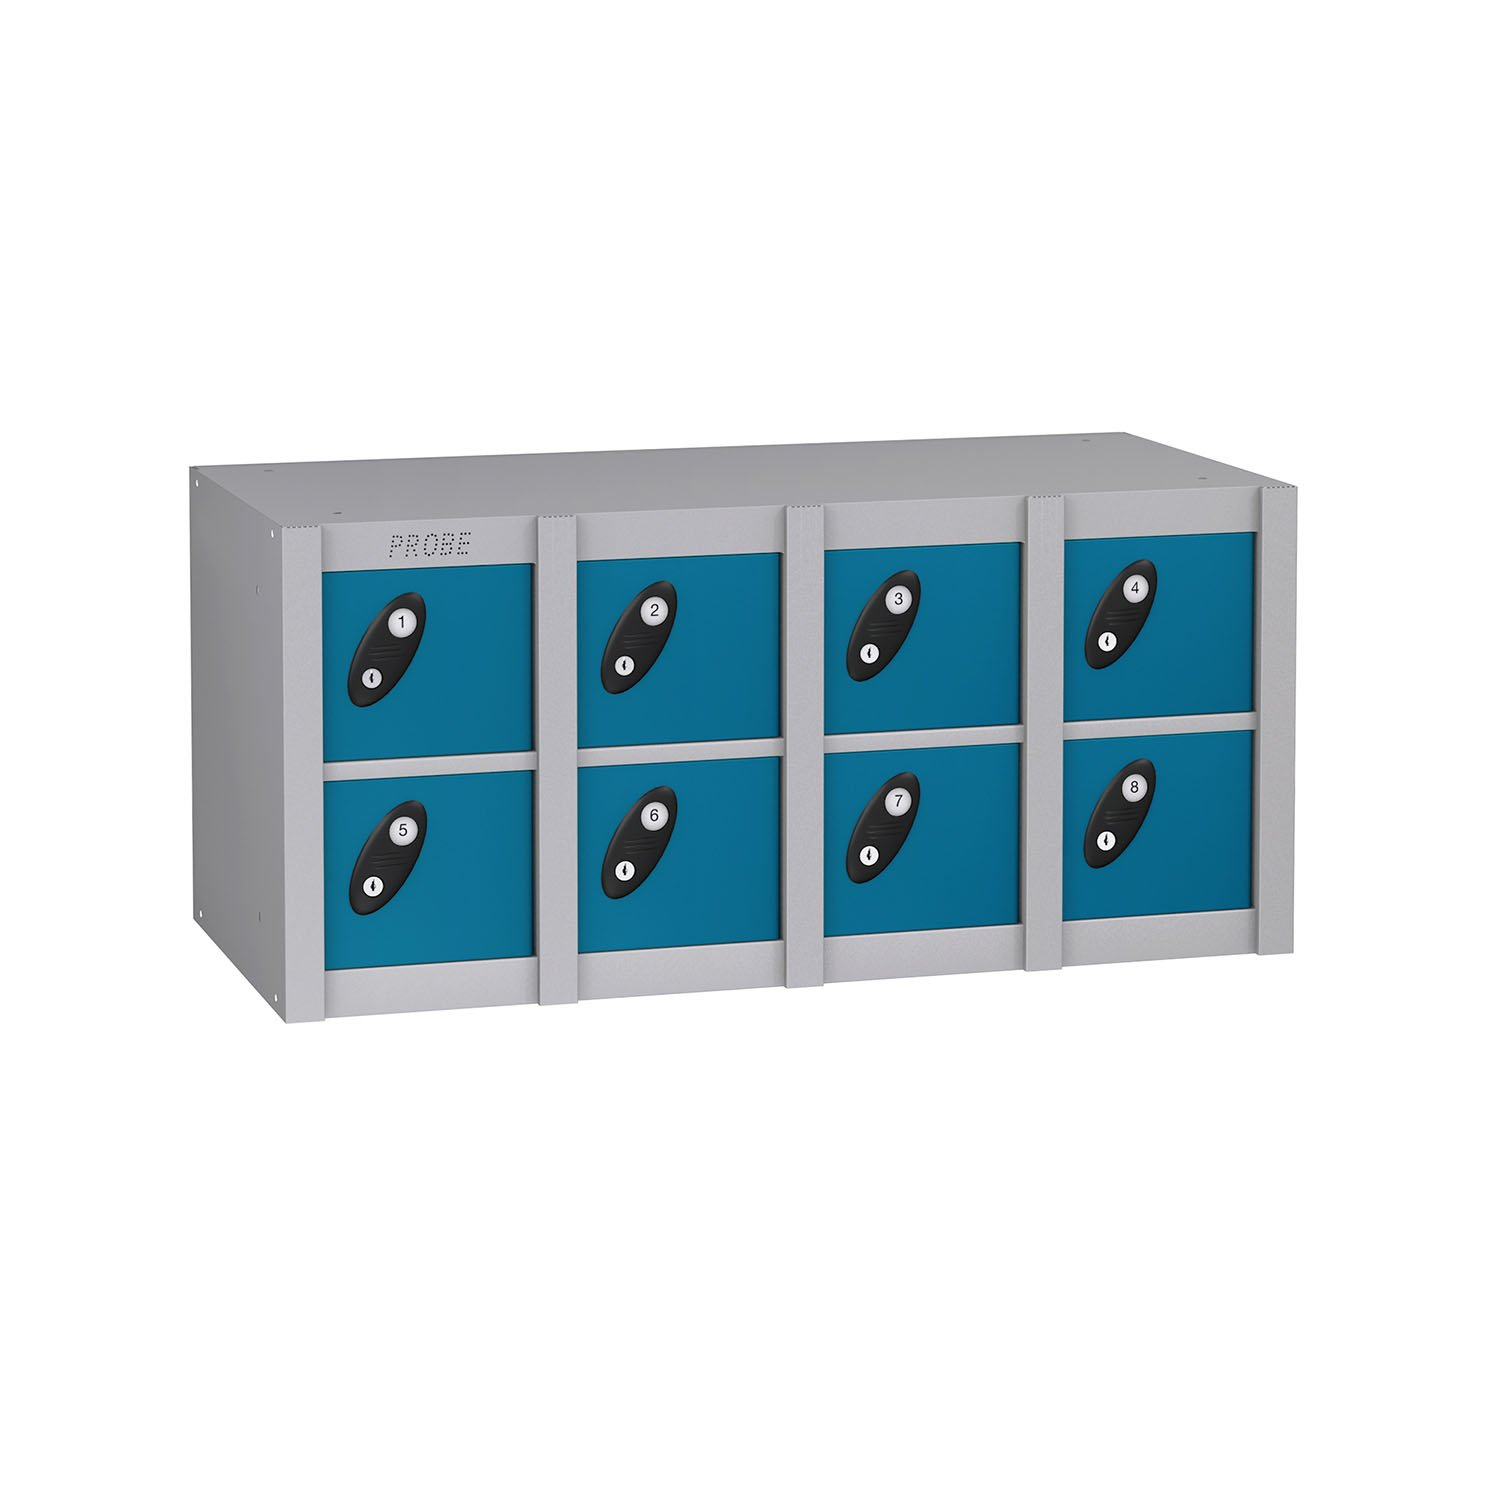 Probe 8 doors minibox lockers in blue colour